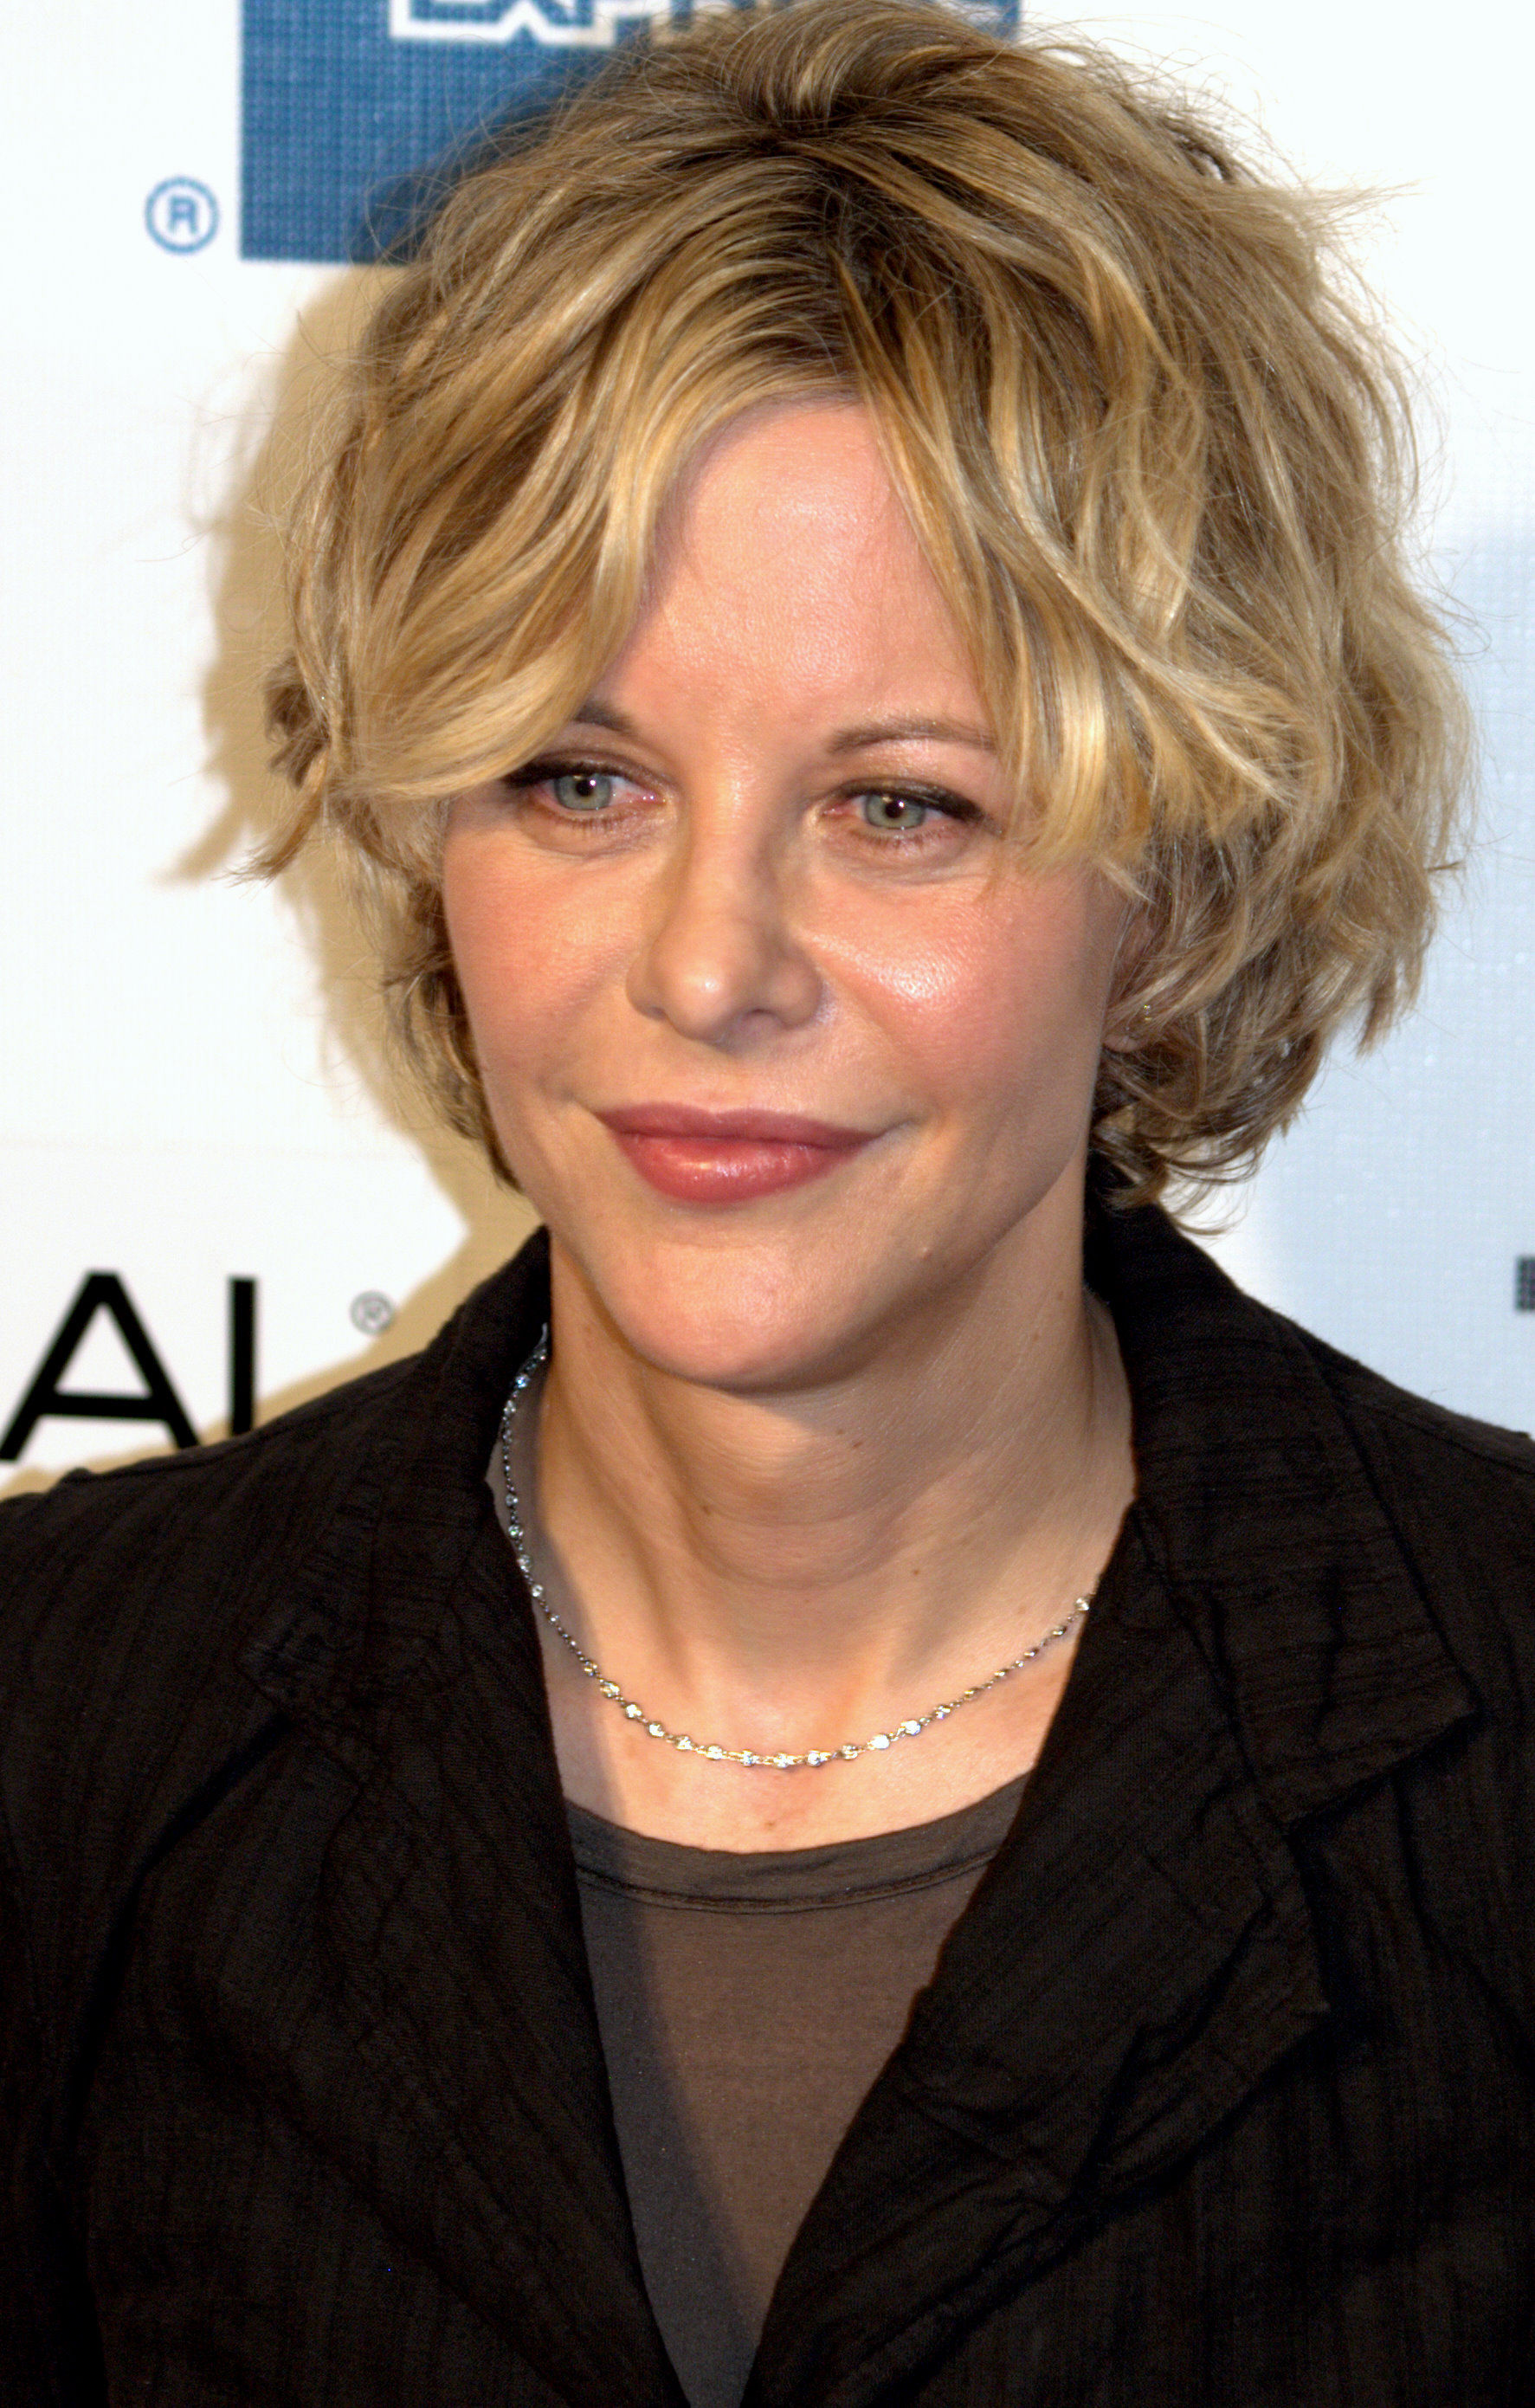 Photo of Meg Ryan: American actress and producer